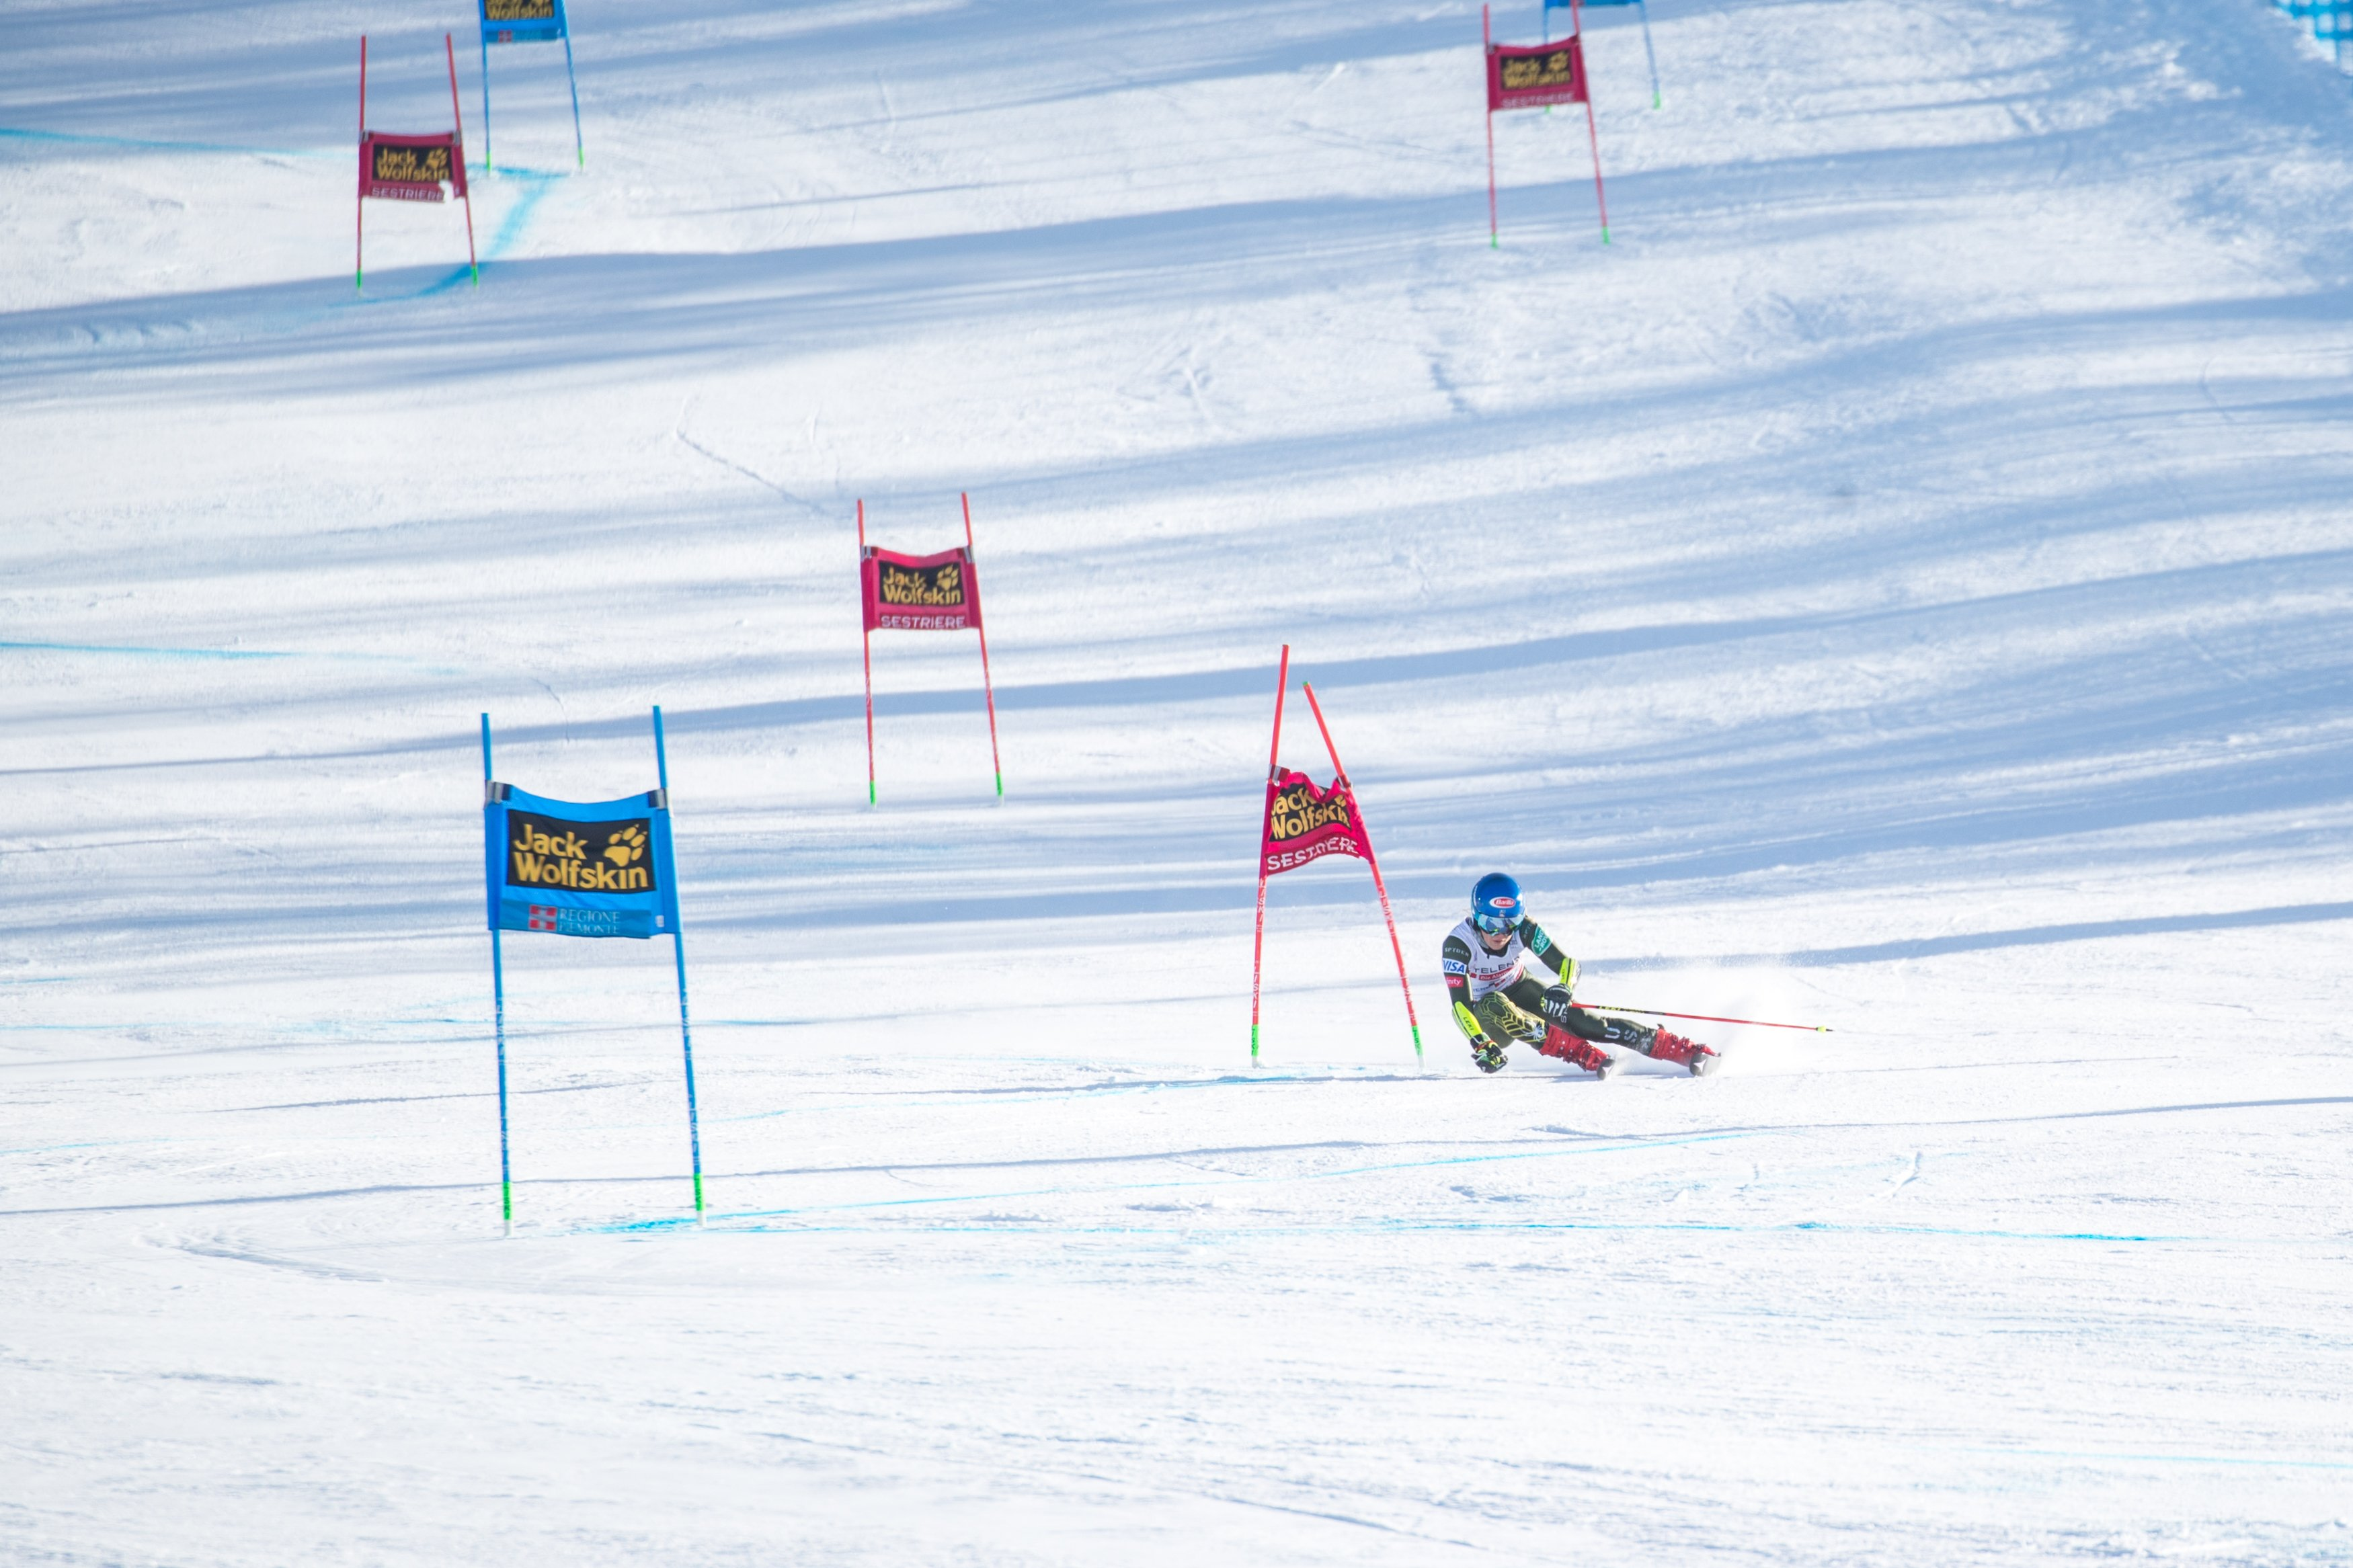 American skiing star Mikaela Shiffrin makes yet another World Cup podium taking bronze behind Federica Brignone and Petra Vlhova by .01 seconds in Giant Slalom in Italy